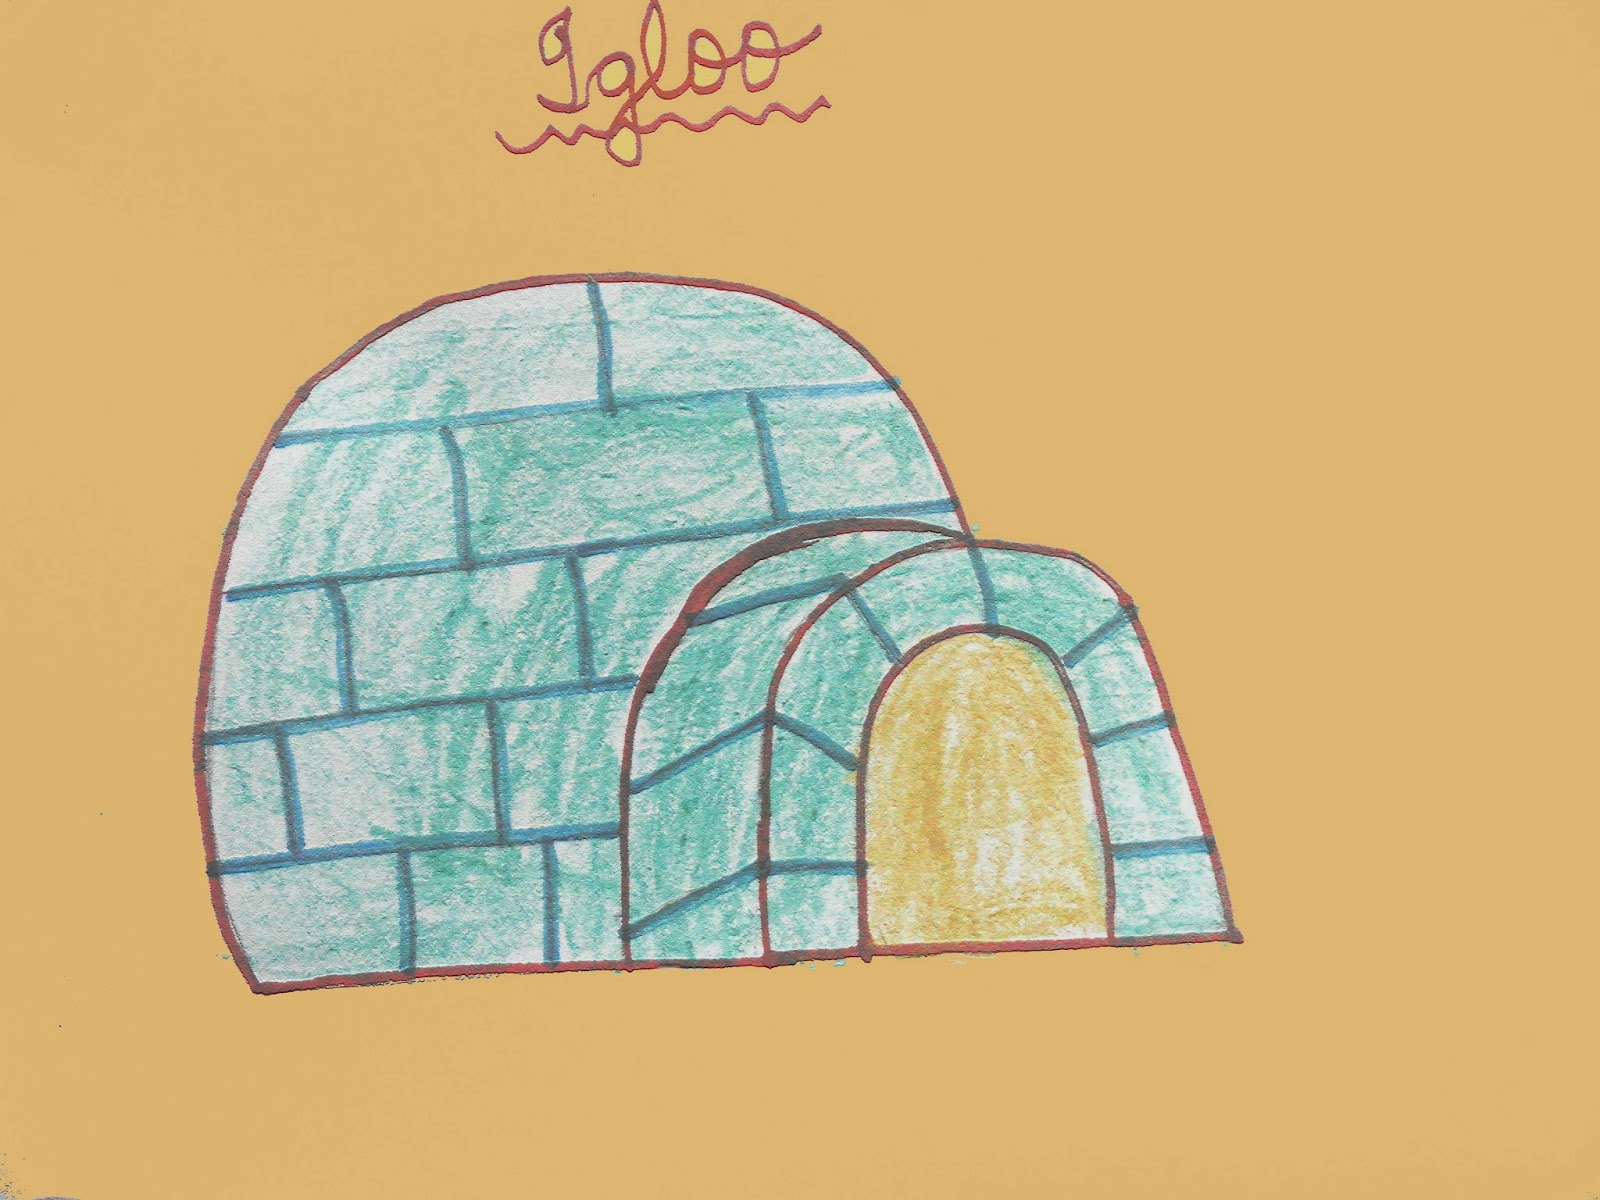 igloo kids drawing and facts virtual kidspace